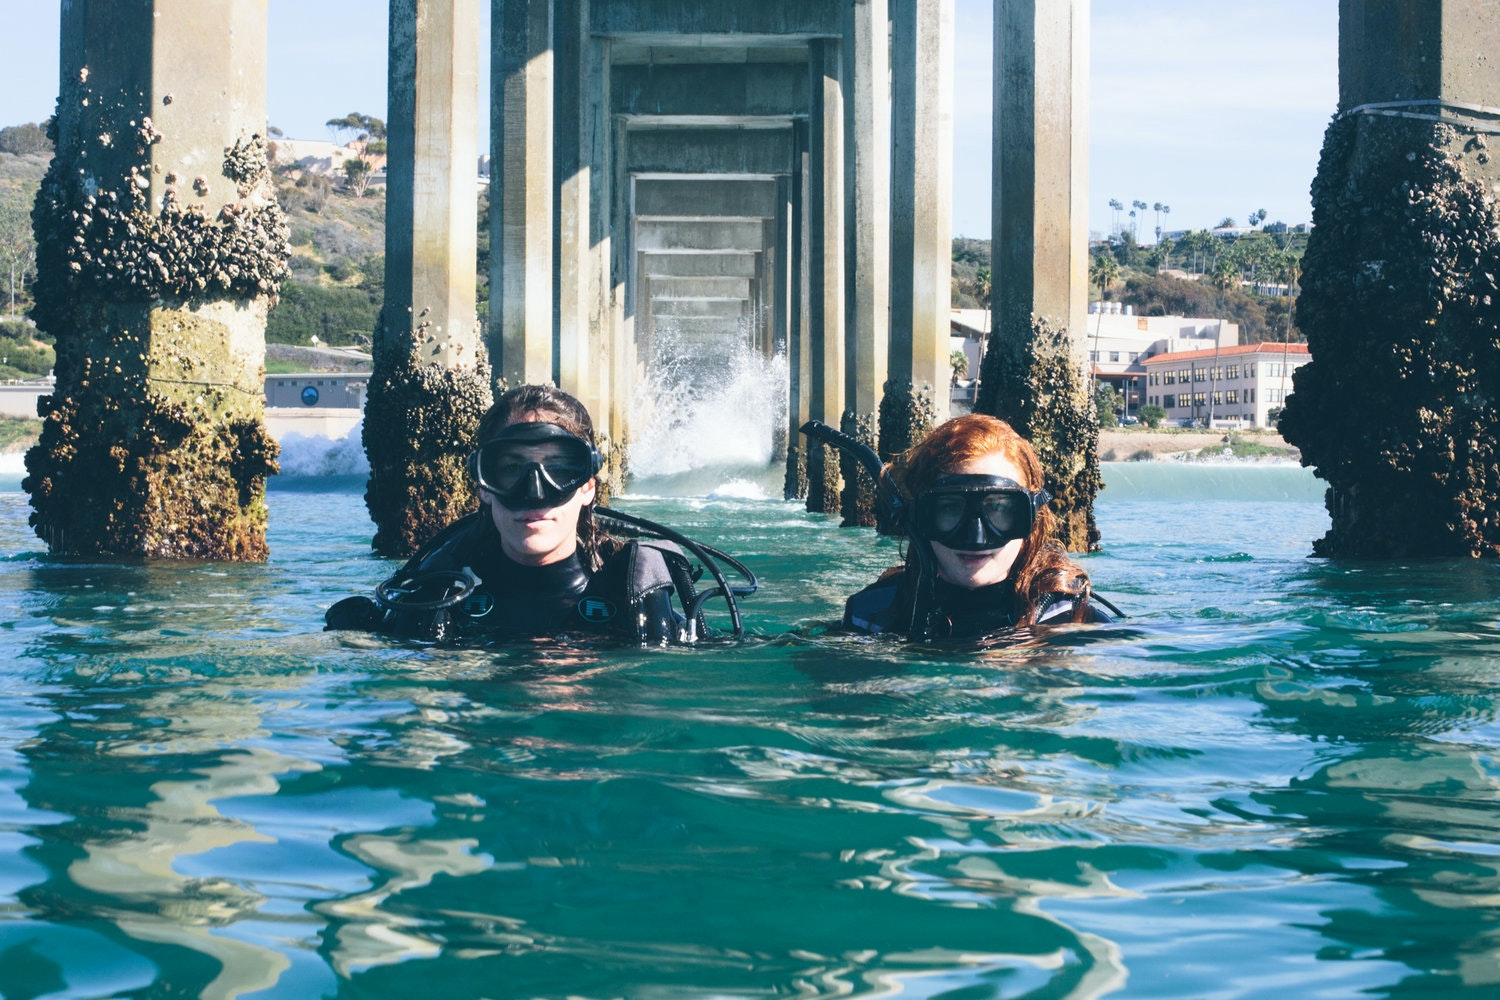 Together, Emily Callahan (left) and Amanda Jackson (right) are a driving force behind Rigs-to-Reefs programs around the world.